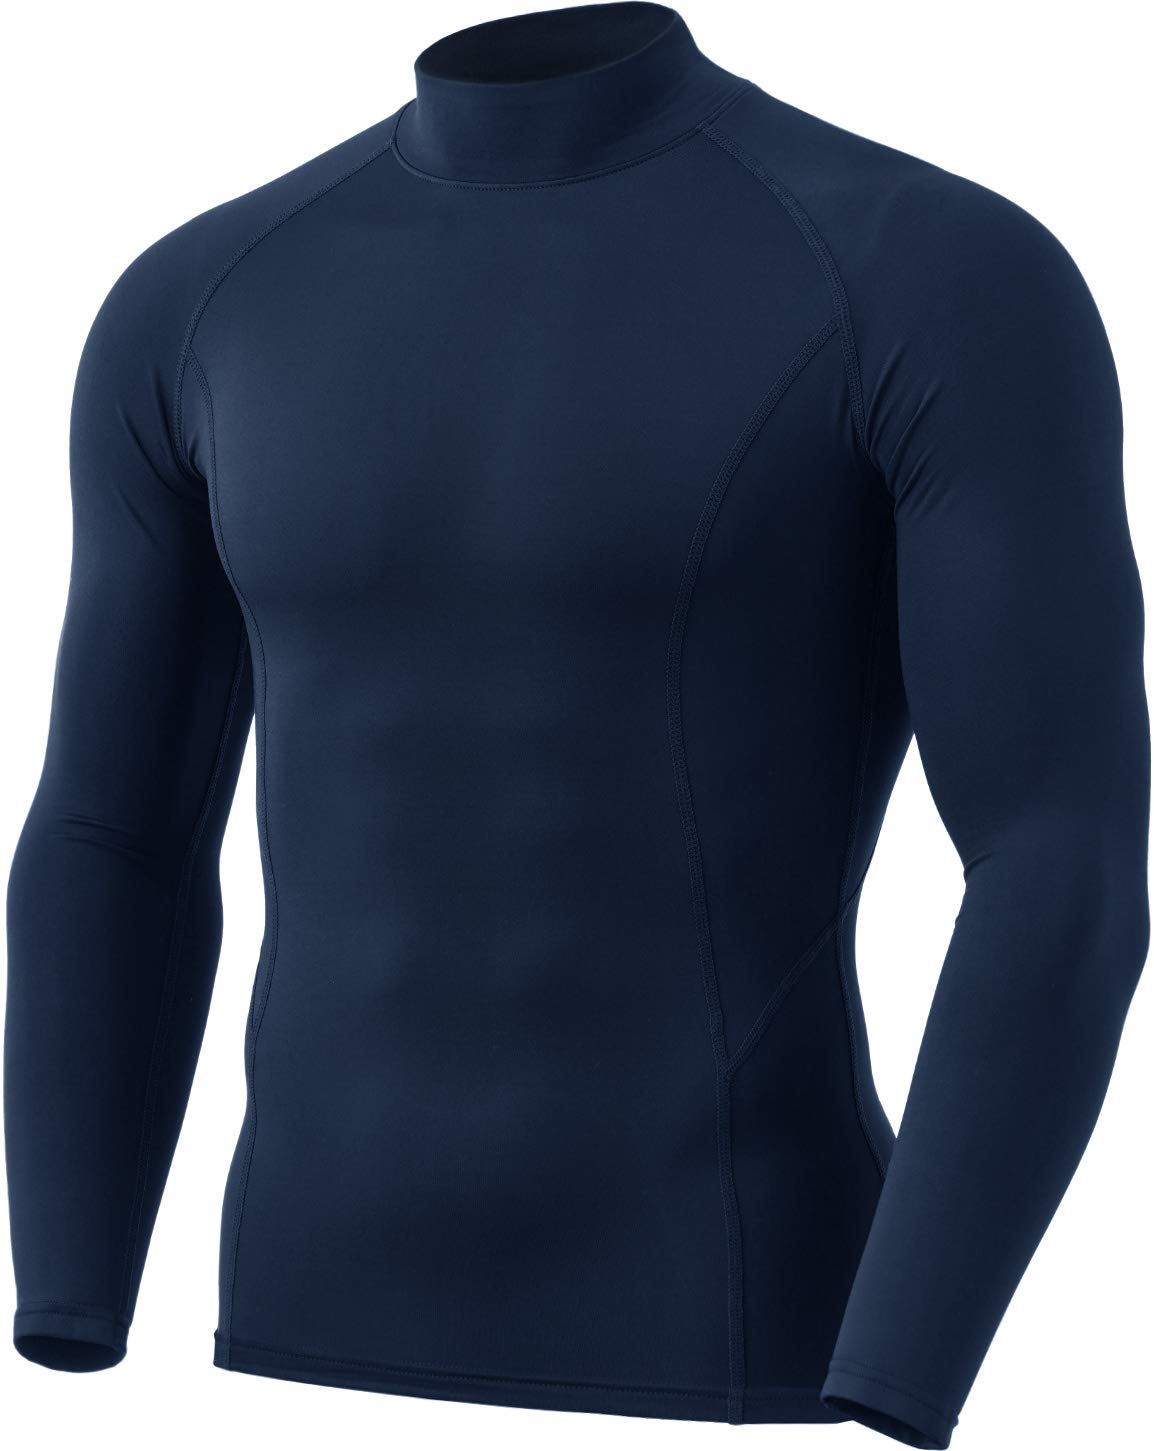 TSLA 1 or 2 Pack Men's Thermal Long Sleeve Compression Shirts, Mock/Turtleneck Winter Sports Running Base Layer Top